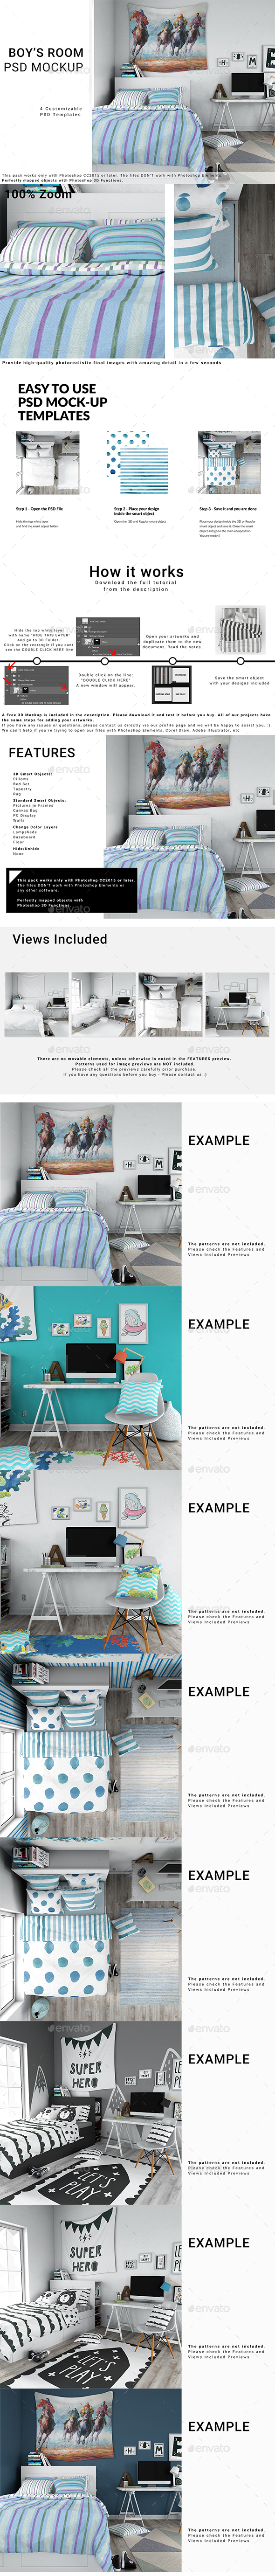 Rug Mockup Graphics, Designs & Templates from GraphicRiver